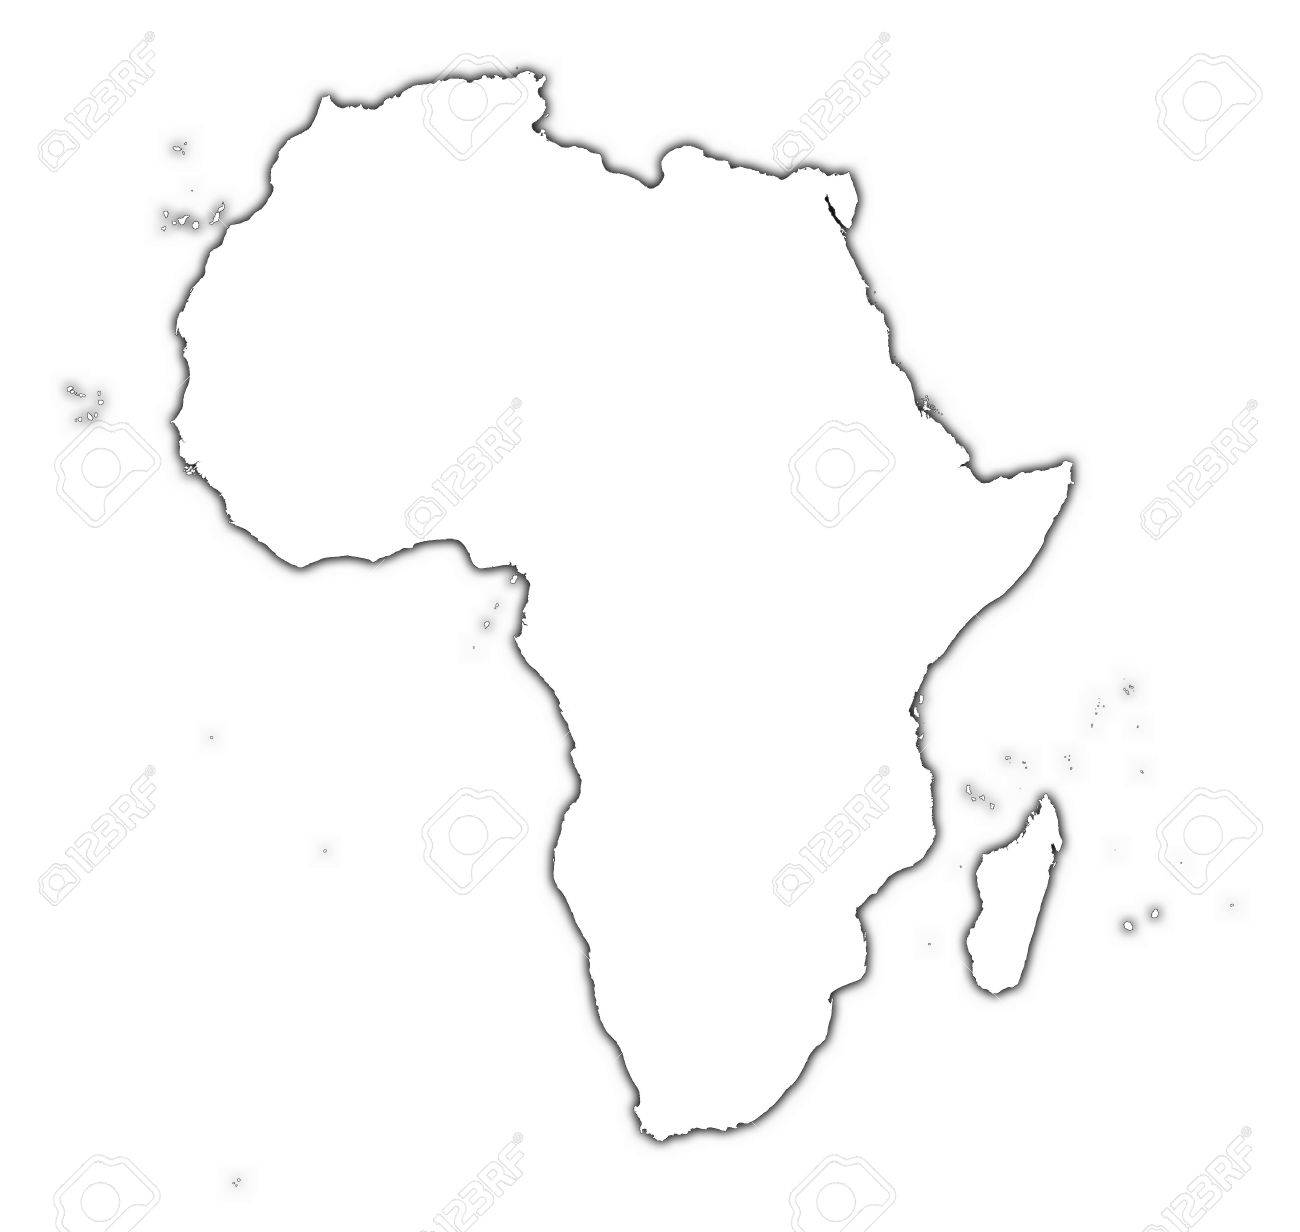 Map Of Africa Outline.Africa Outline Map With Shadow Detailed Mercator Projection